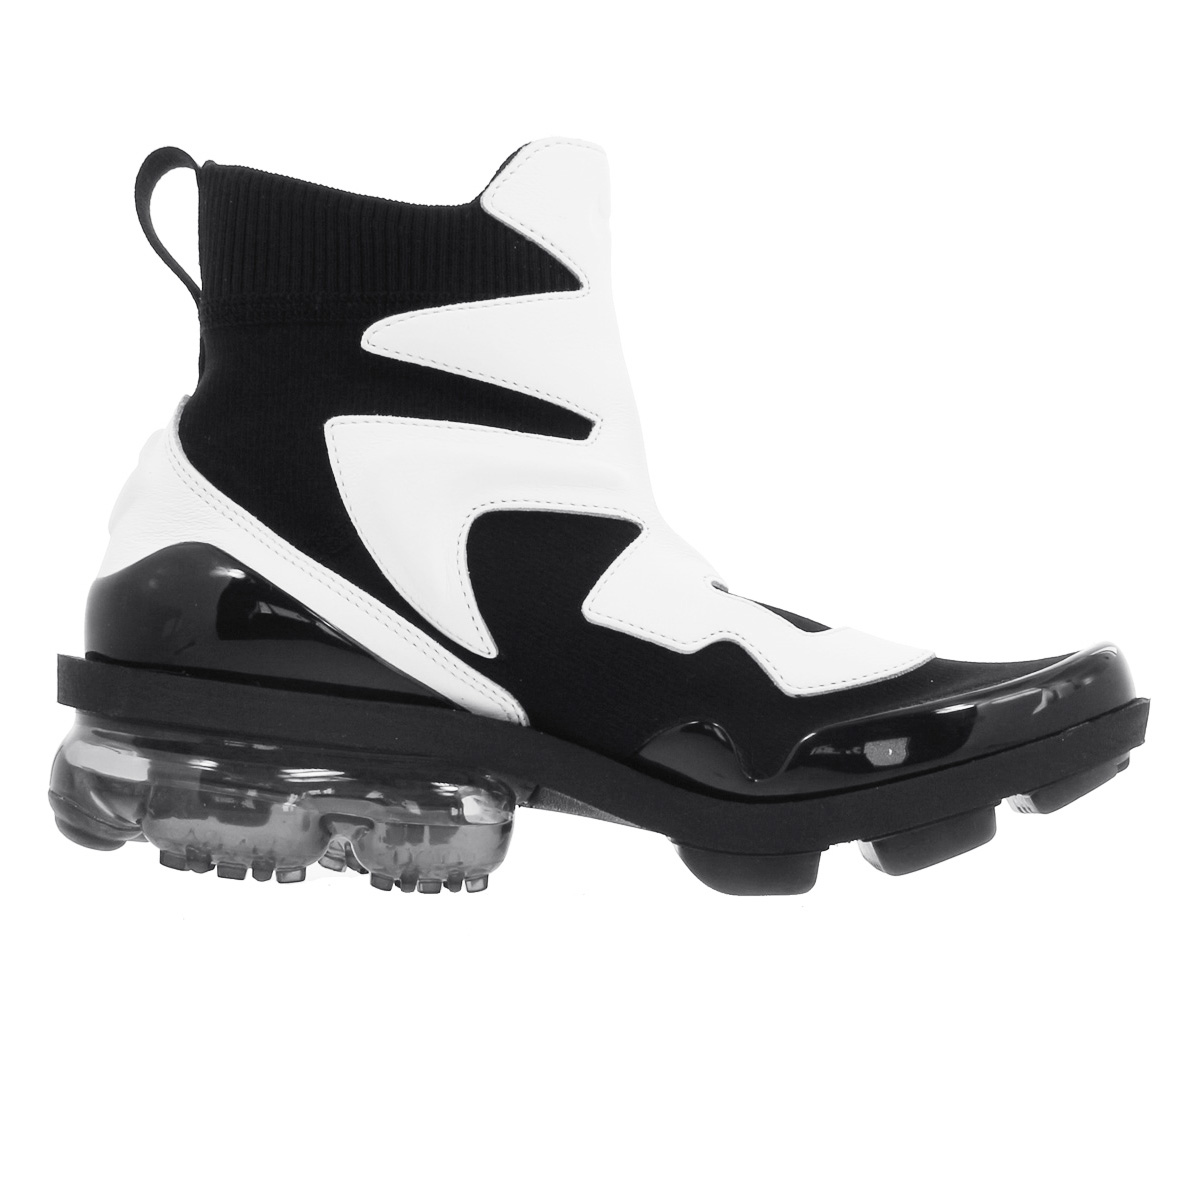 8dc8e5f8a5 ... NIKE WMNS AIR VAPORMAX LIGHT II Nike women air vapor max light 2 BLACK/ WHITE ...